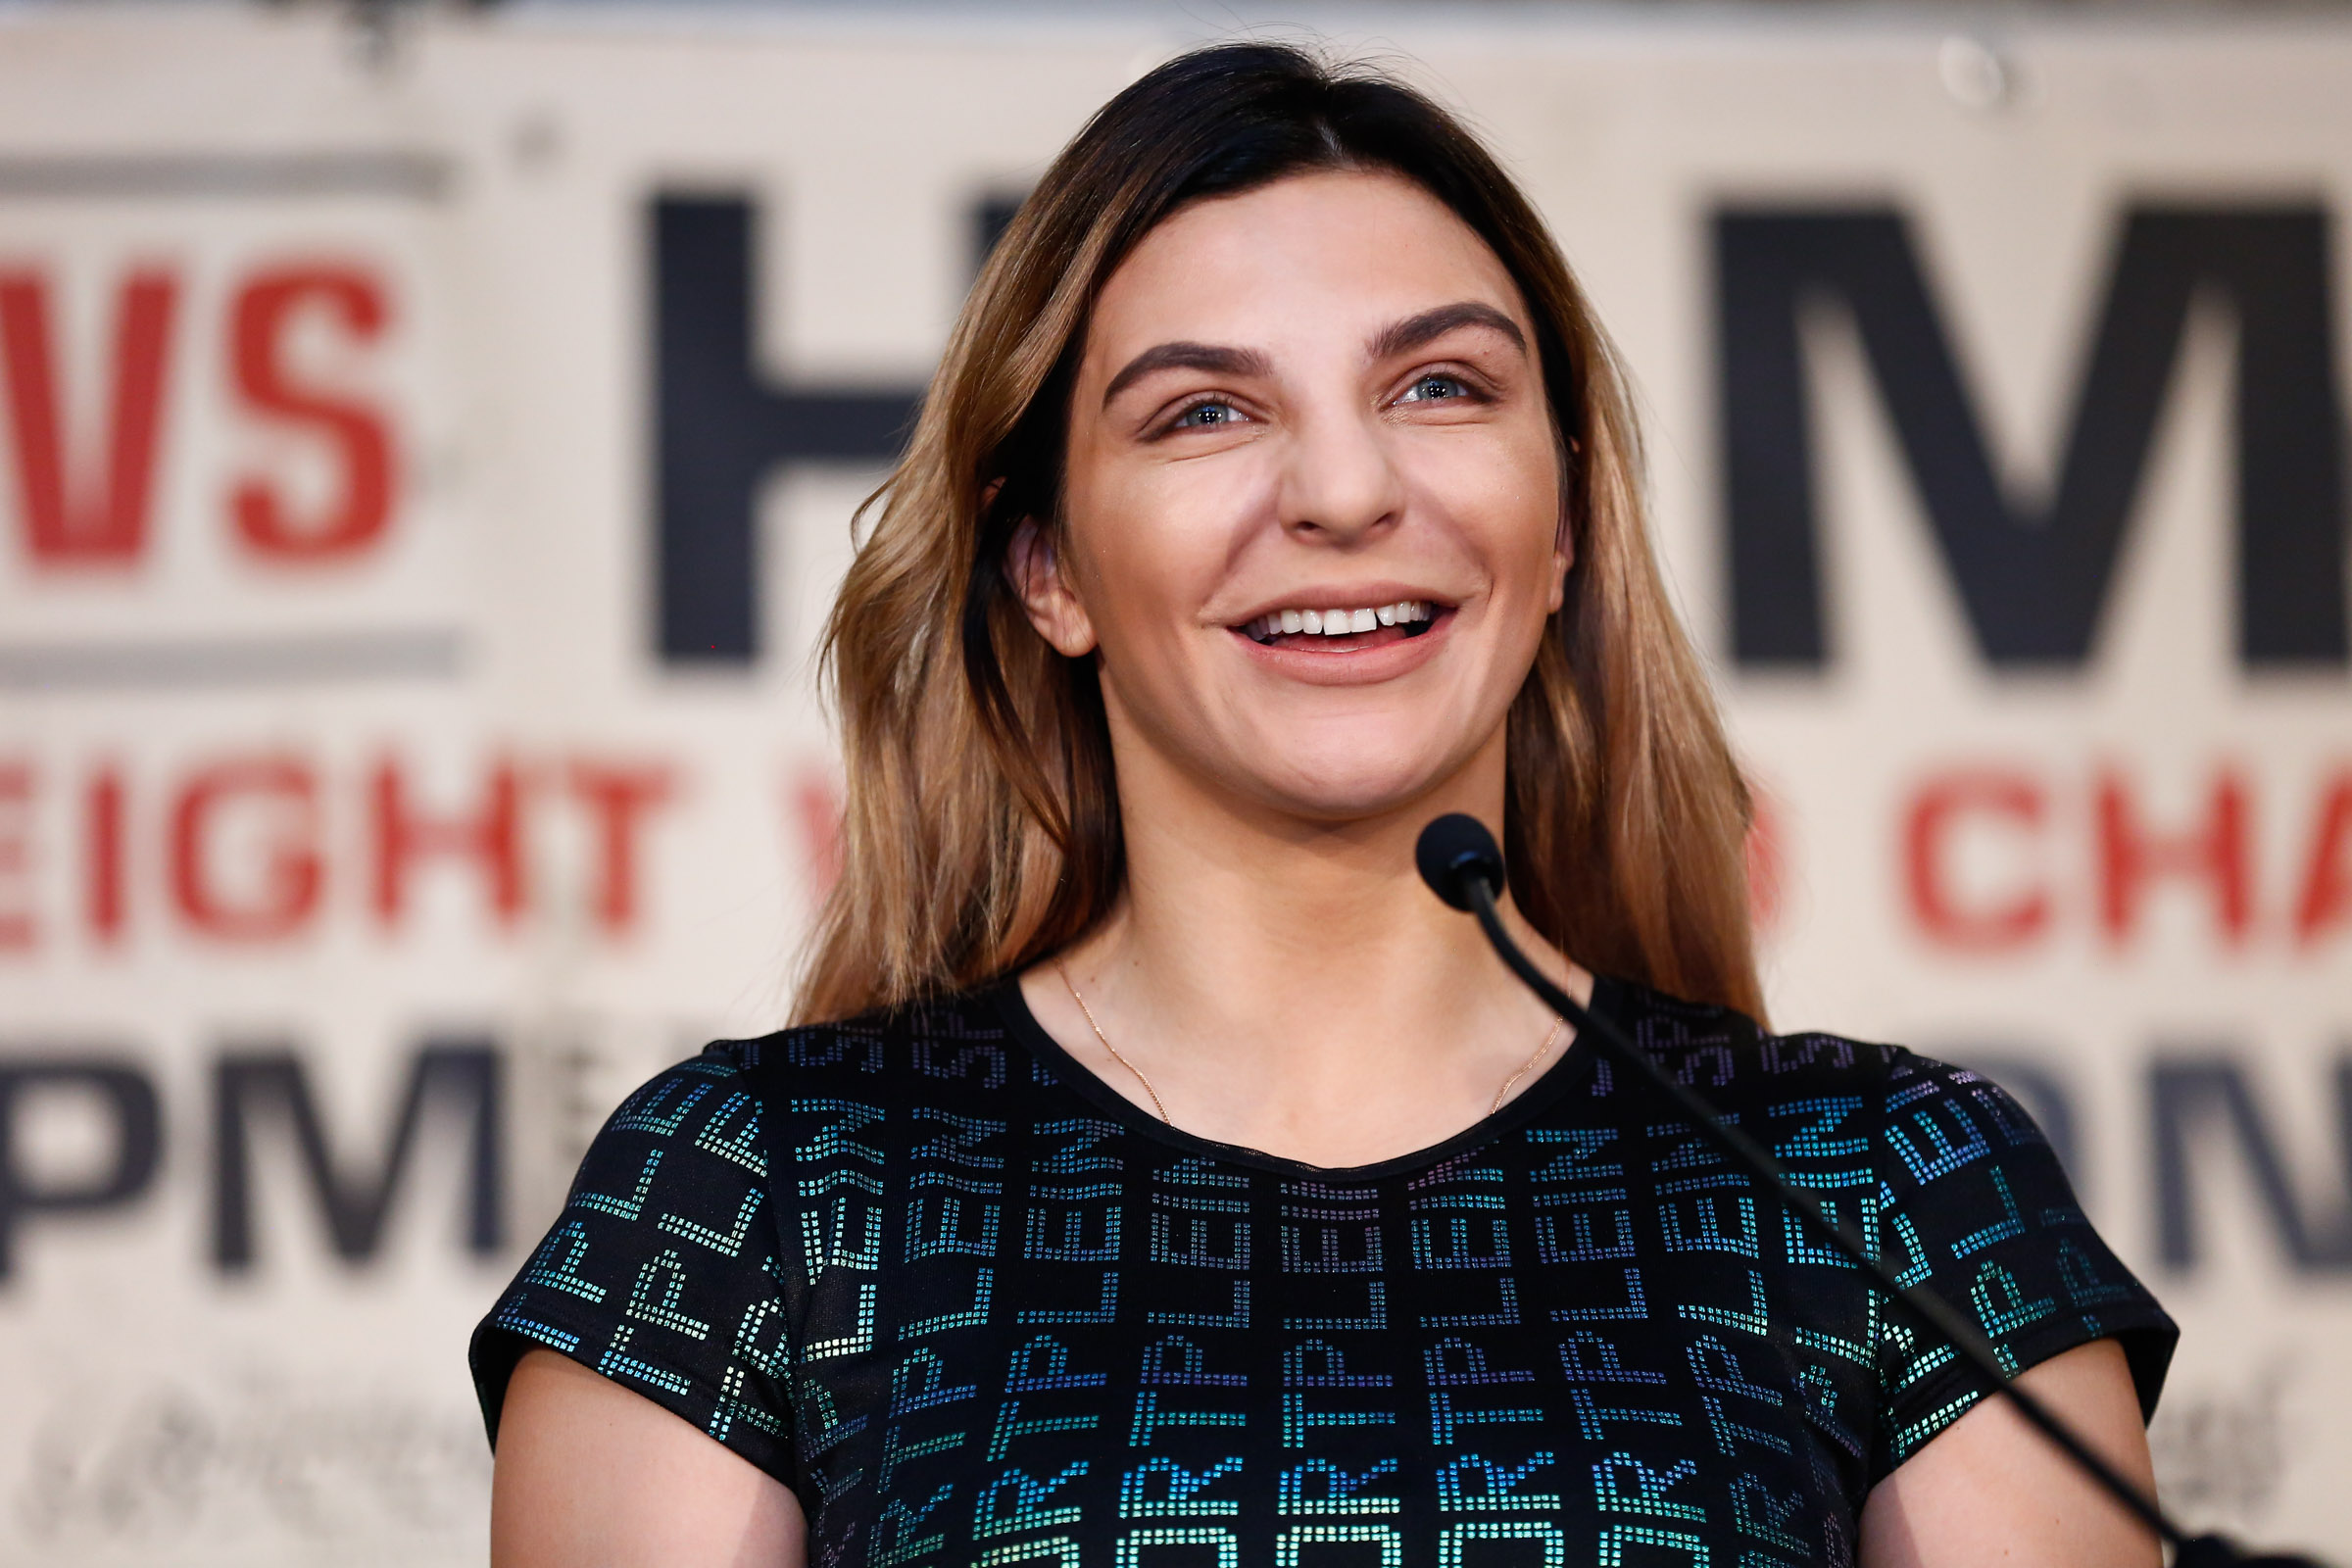 LR SHO SHIELDS VS HAMMER PRESSER CHRISTINA HAMMER TRAPPFOTOS 02262019 4001 - Is Claressa Shields-Christina Hammer the biggest fight in women's boxing history?